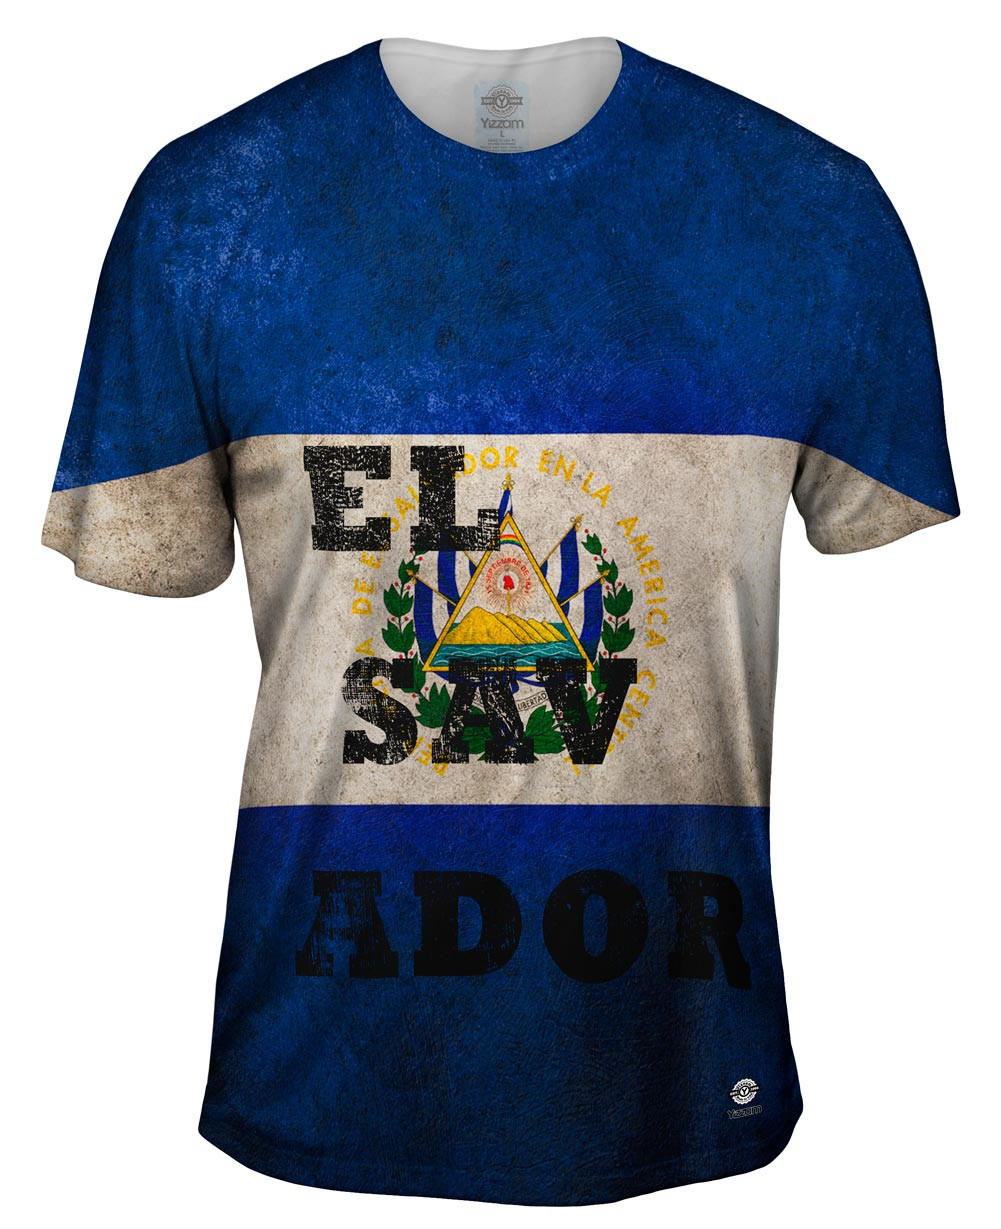 El Salvador Clothing Stores